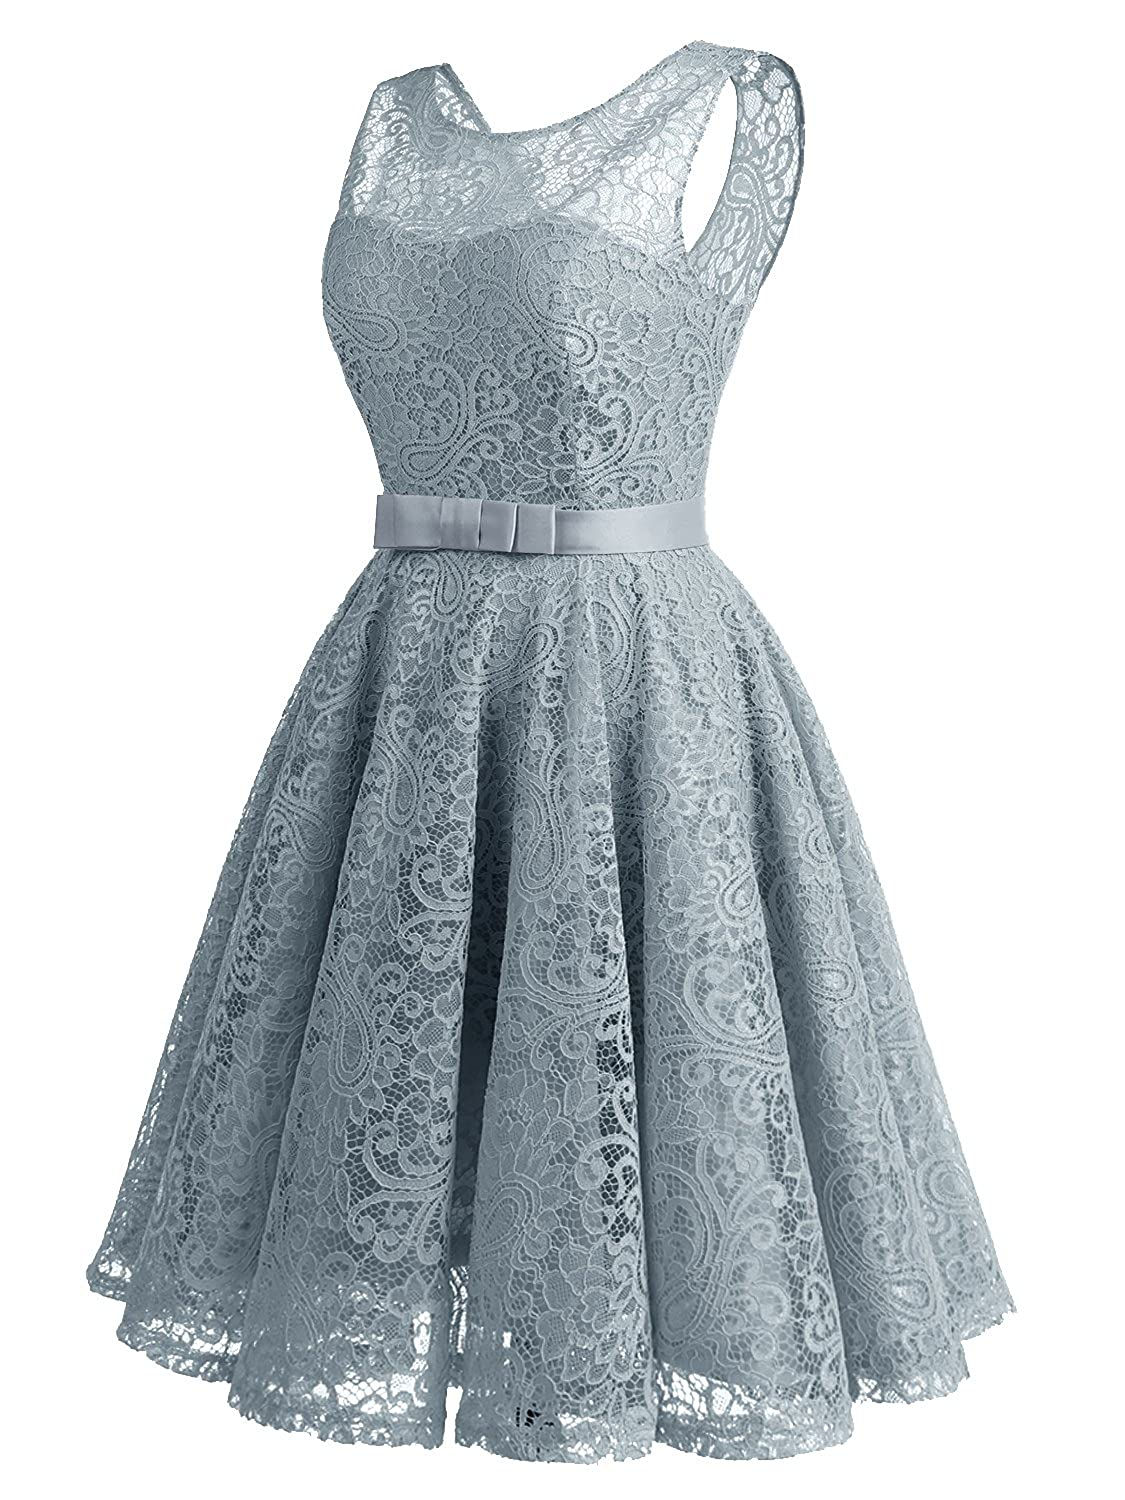 IVNIS Women\'s Lace Fit and Flare Cocktail Party Dress A-Line Prom ...